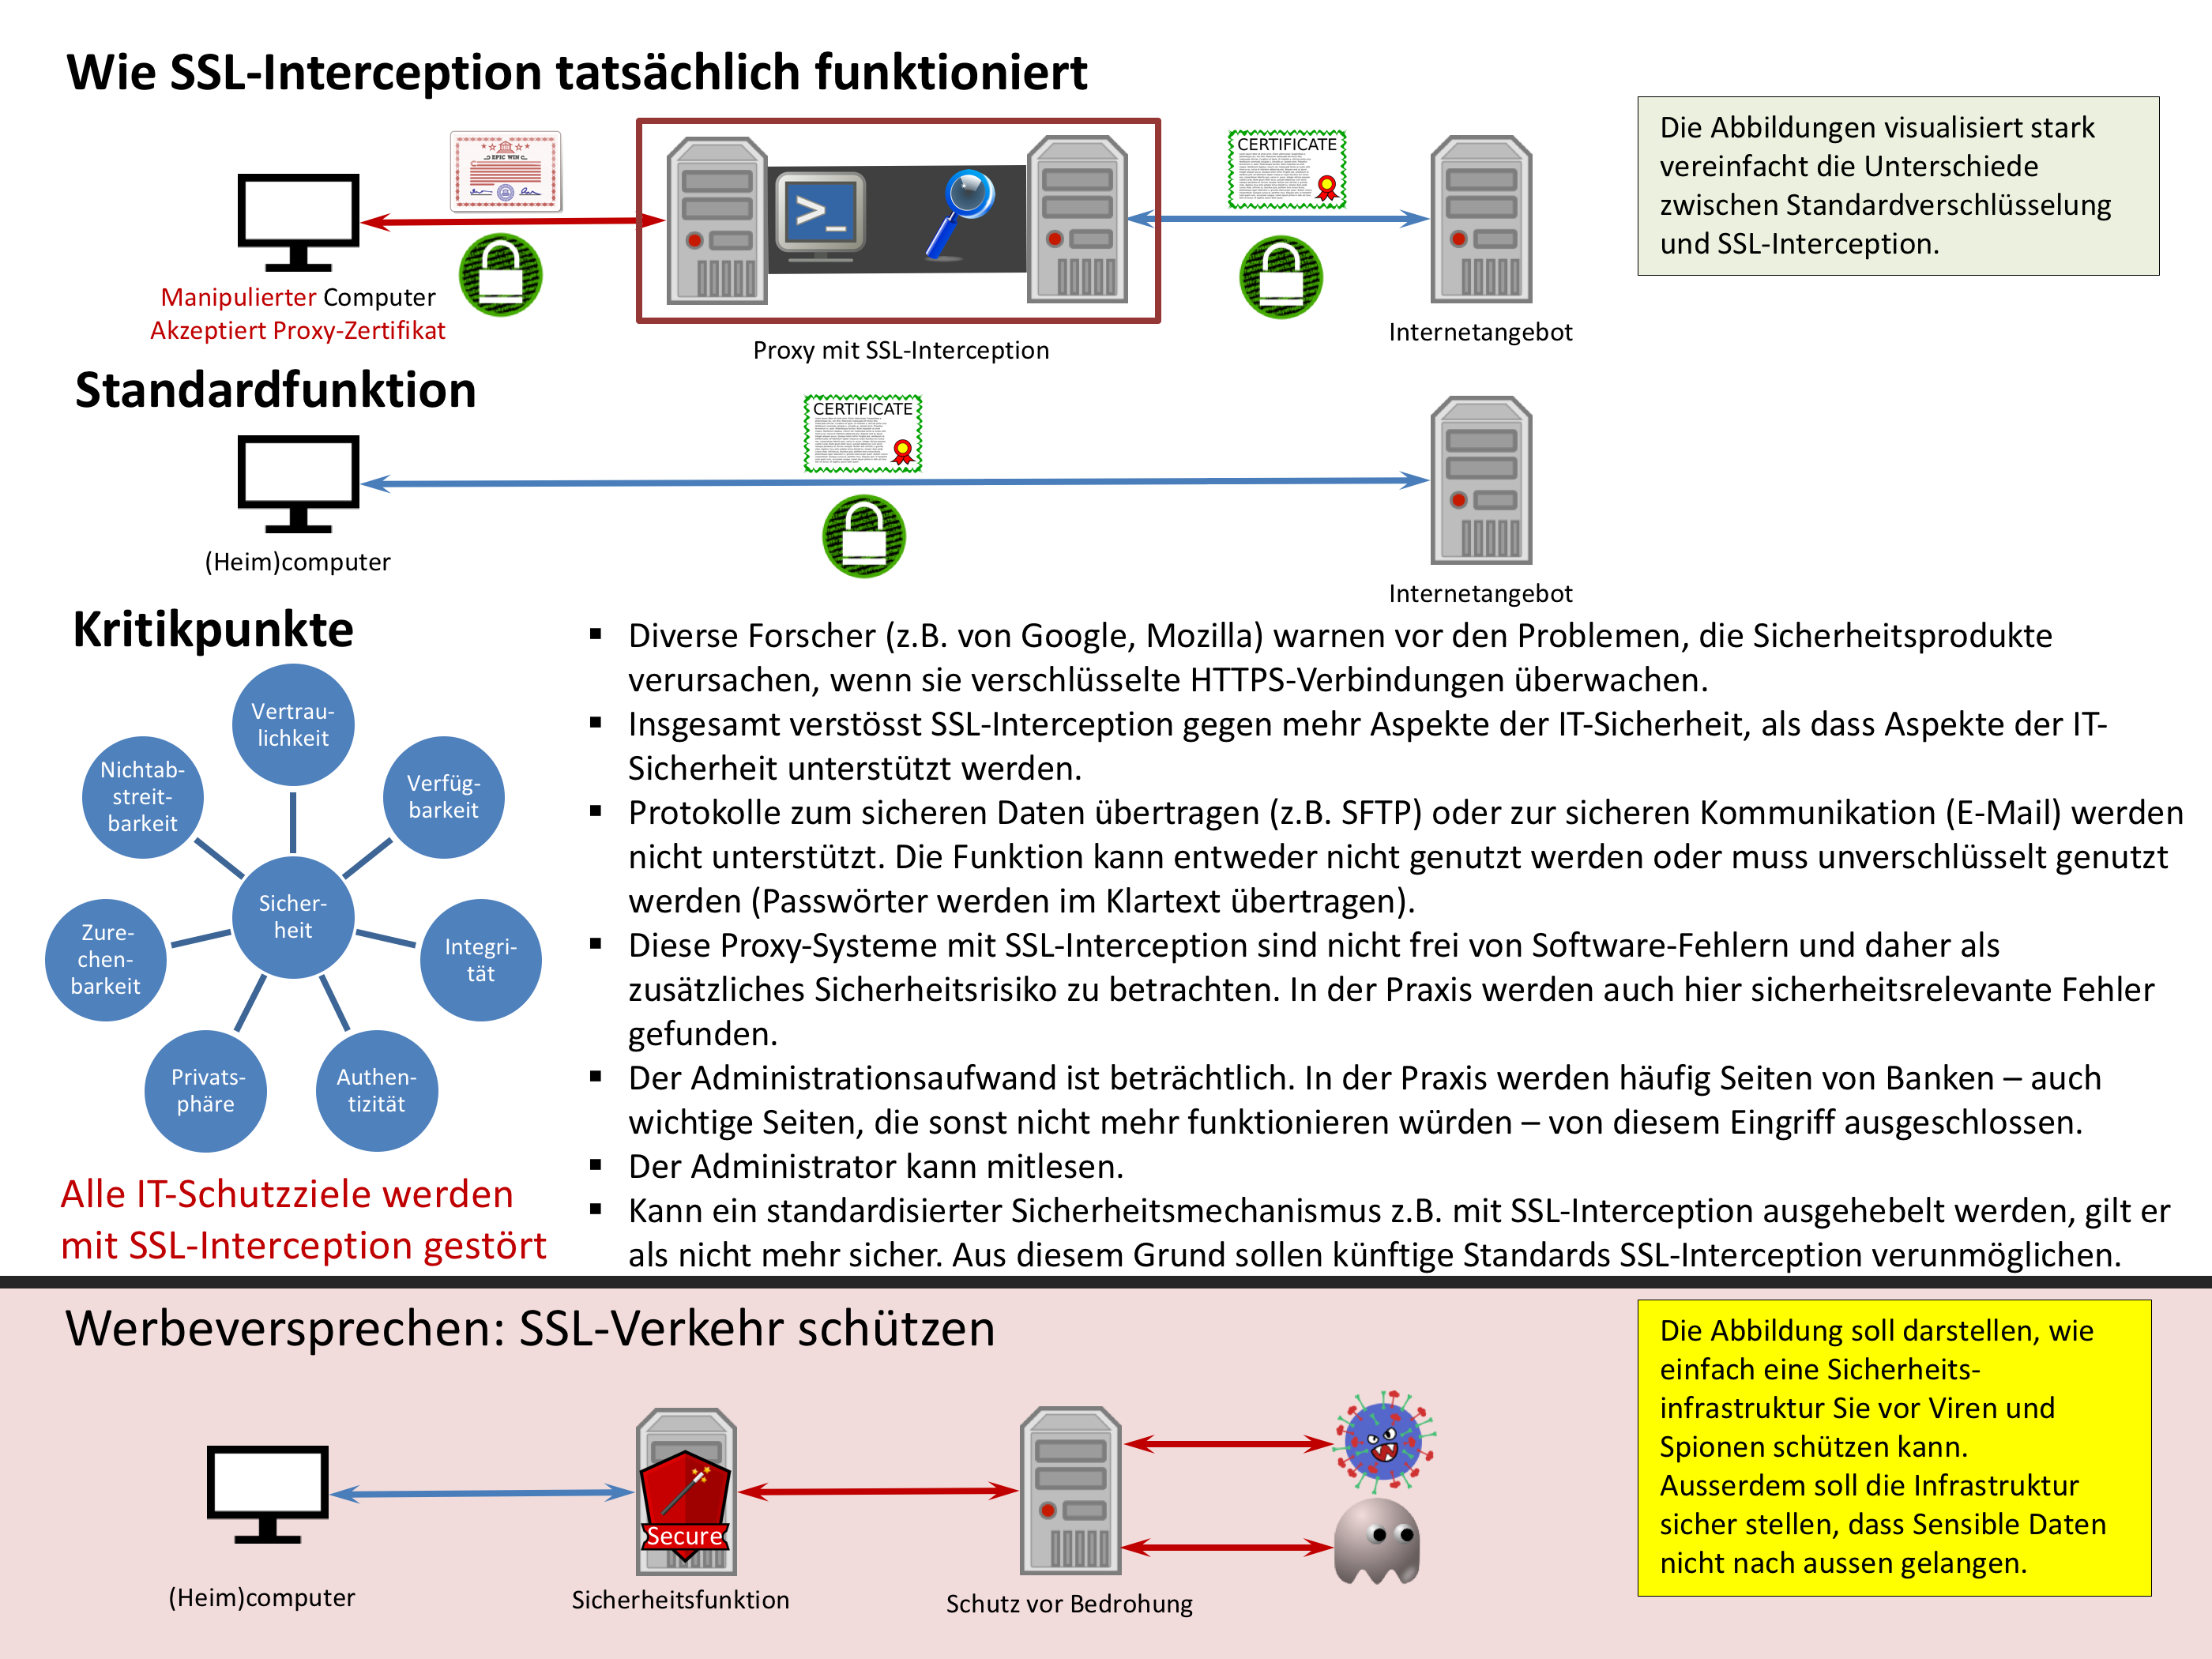 Gegen SSL-Interception